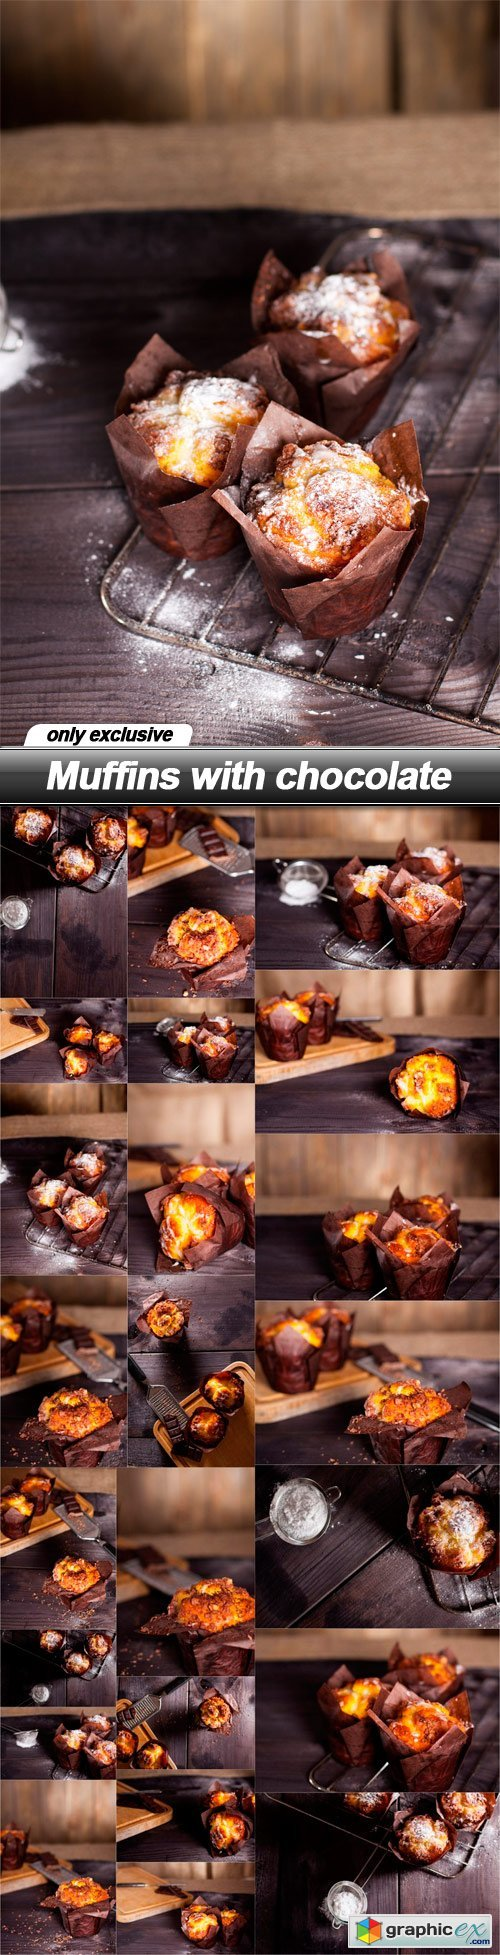 Muffins with chocolate - 23 UHQ JPEG